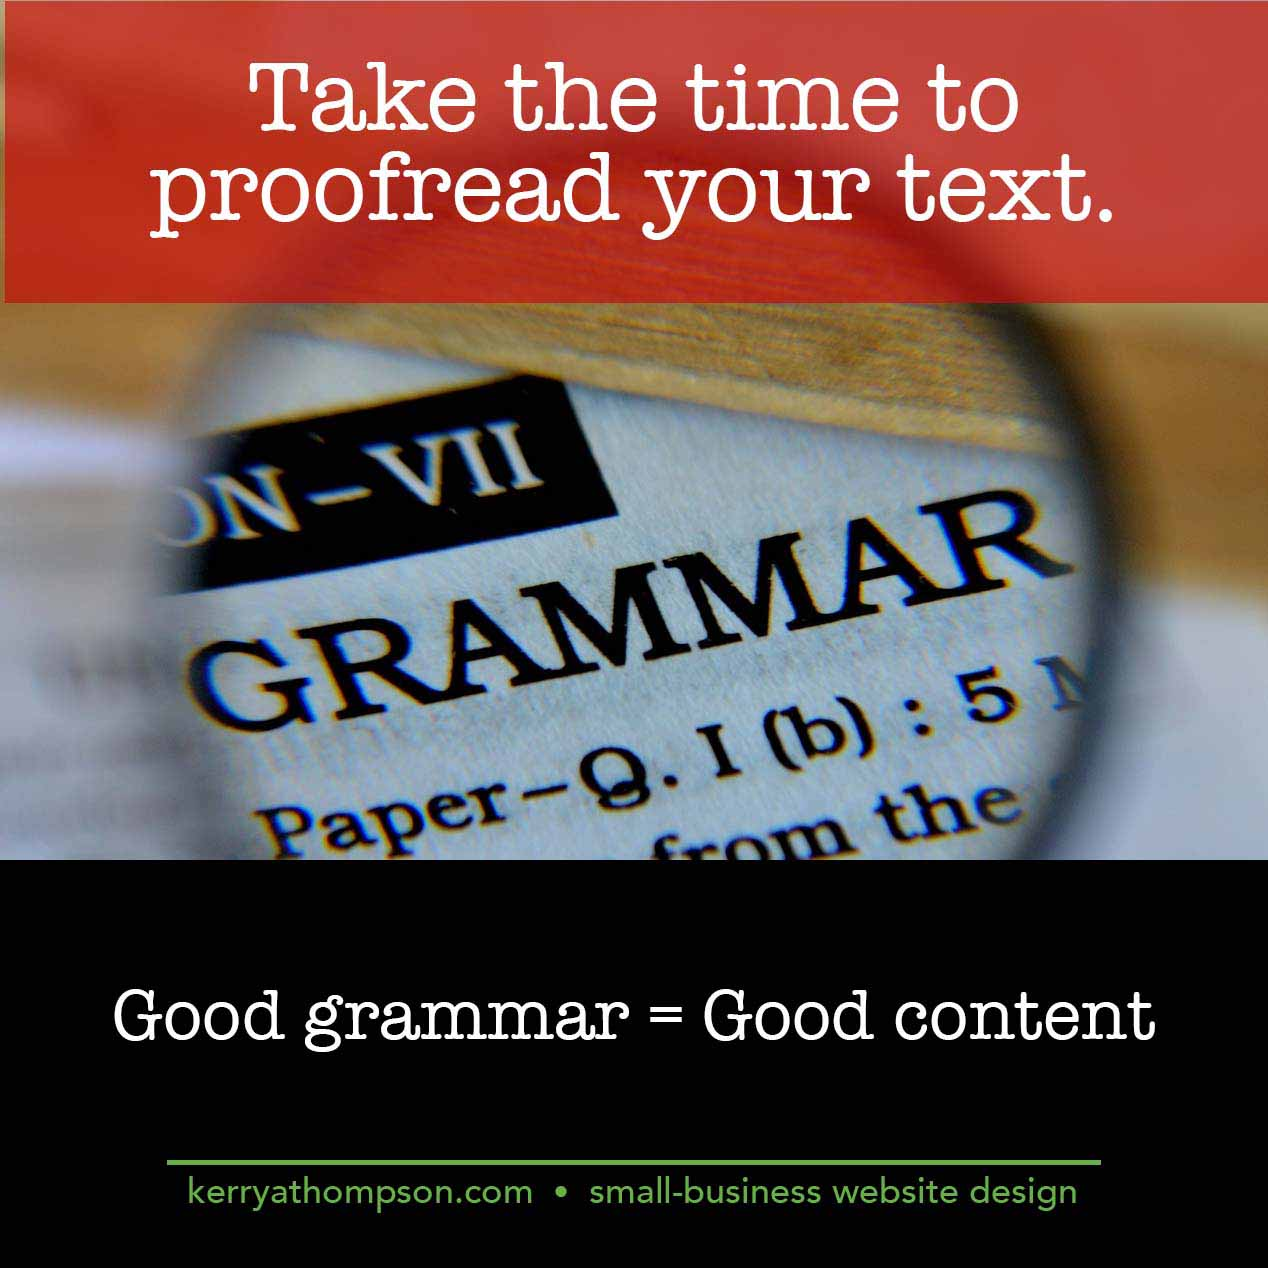 KerryAThompson.com Blog: Take the time to proofread your website content.